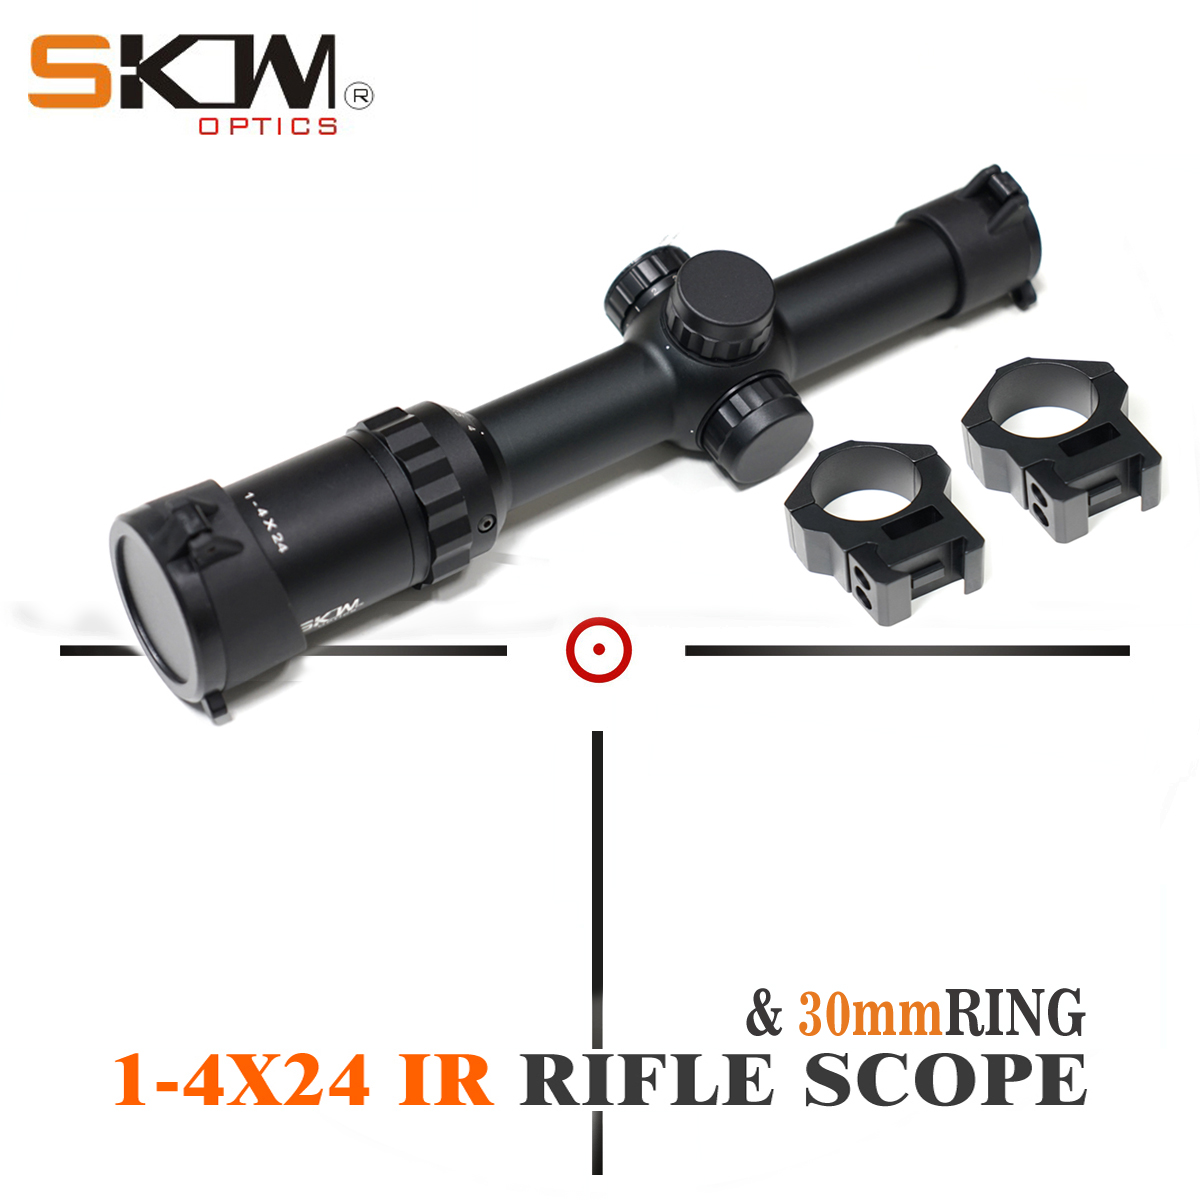 SKWoptics 1-4x24IR tactical rifle scope 30mm rings Hunting Tactical riflescope Sight .223 .308 ar15 scope AK image